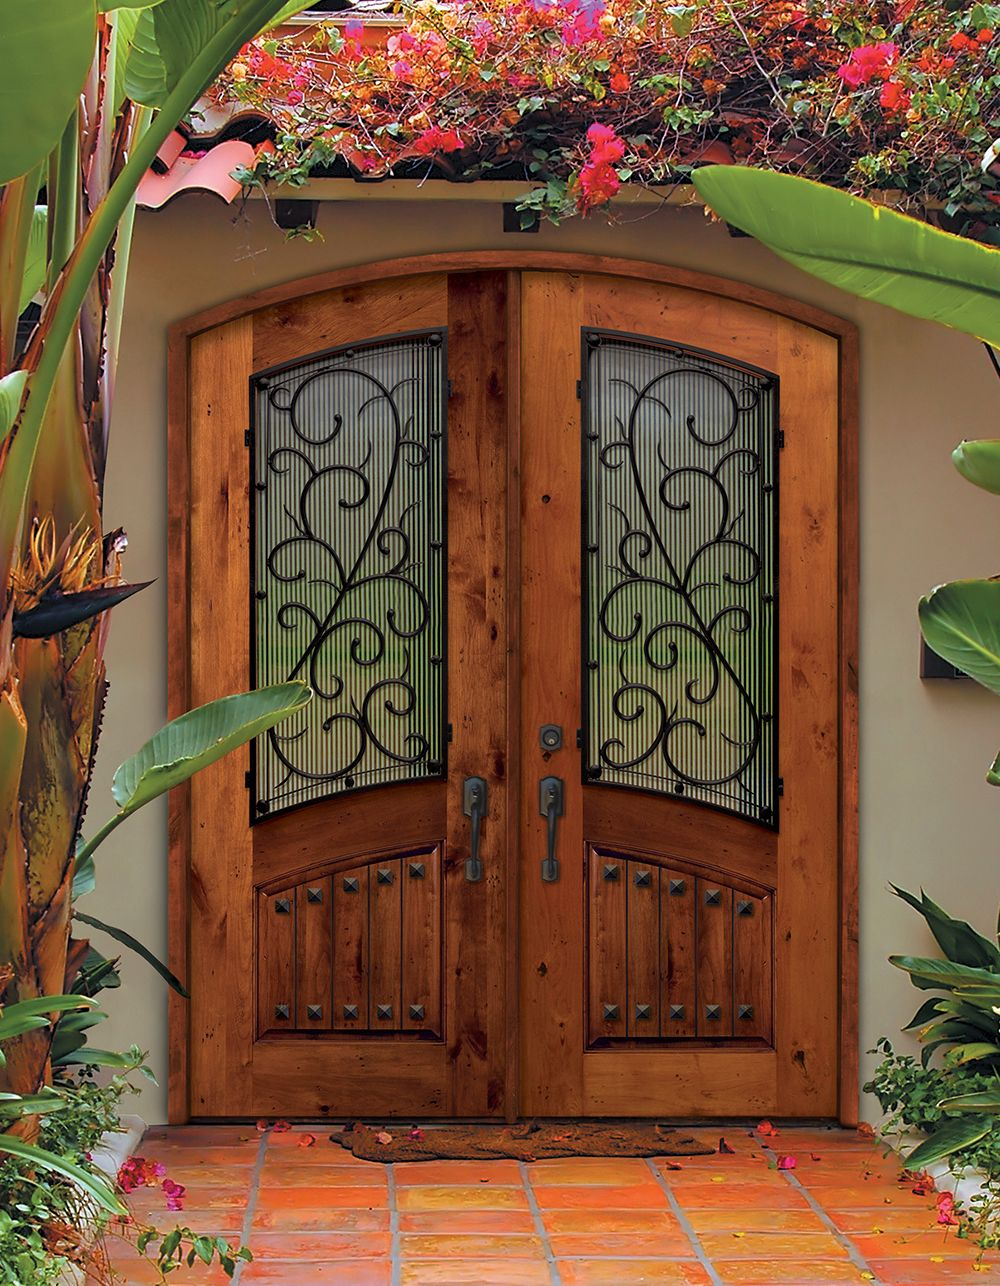 Beautiful Arch Top Double Entry Doors With Bellagio Wrought Iron Design The Unique Pattern On This Knotty Alder Wood Door Adds Rustic Elegance To Home